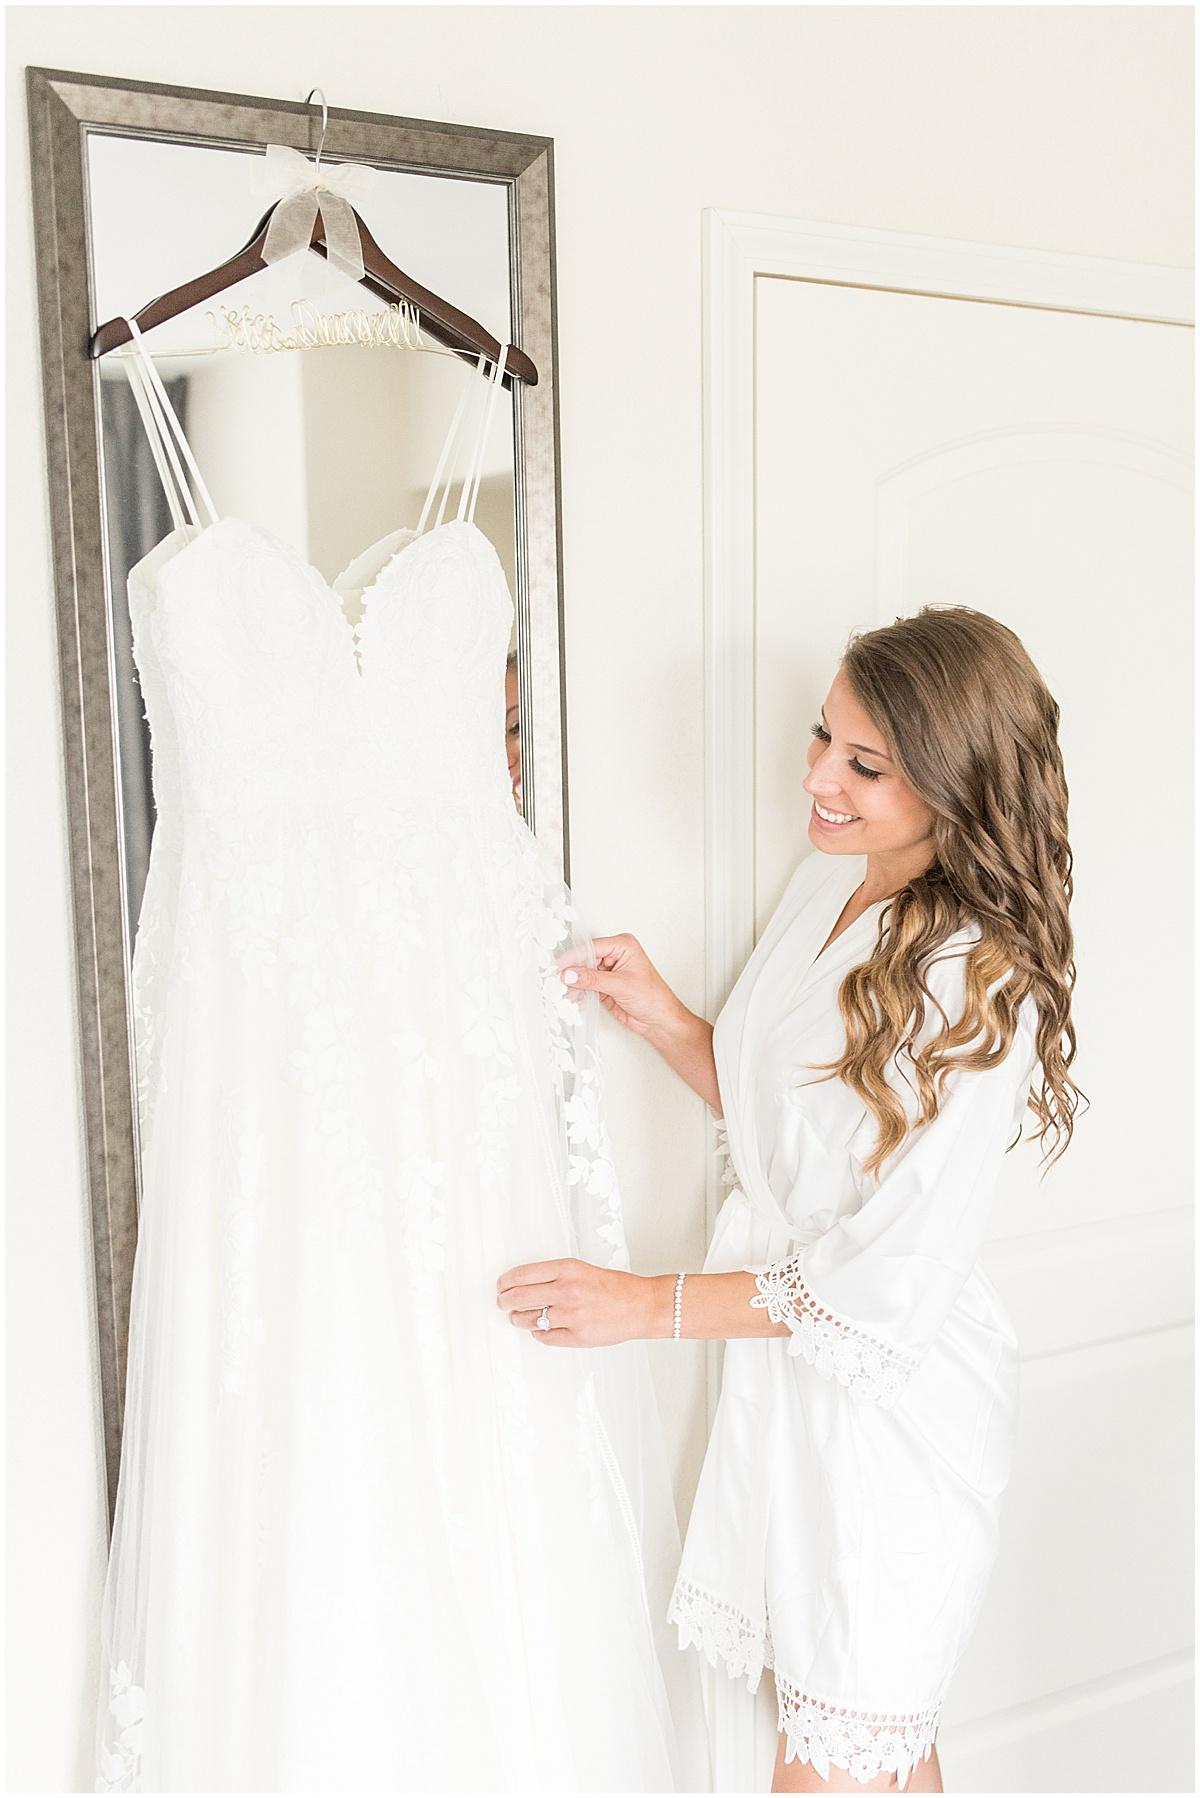 Bride admiring dress before her wedding at the Lighthouse Restaurant in Cedar Lake, Indiana